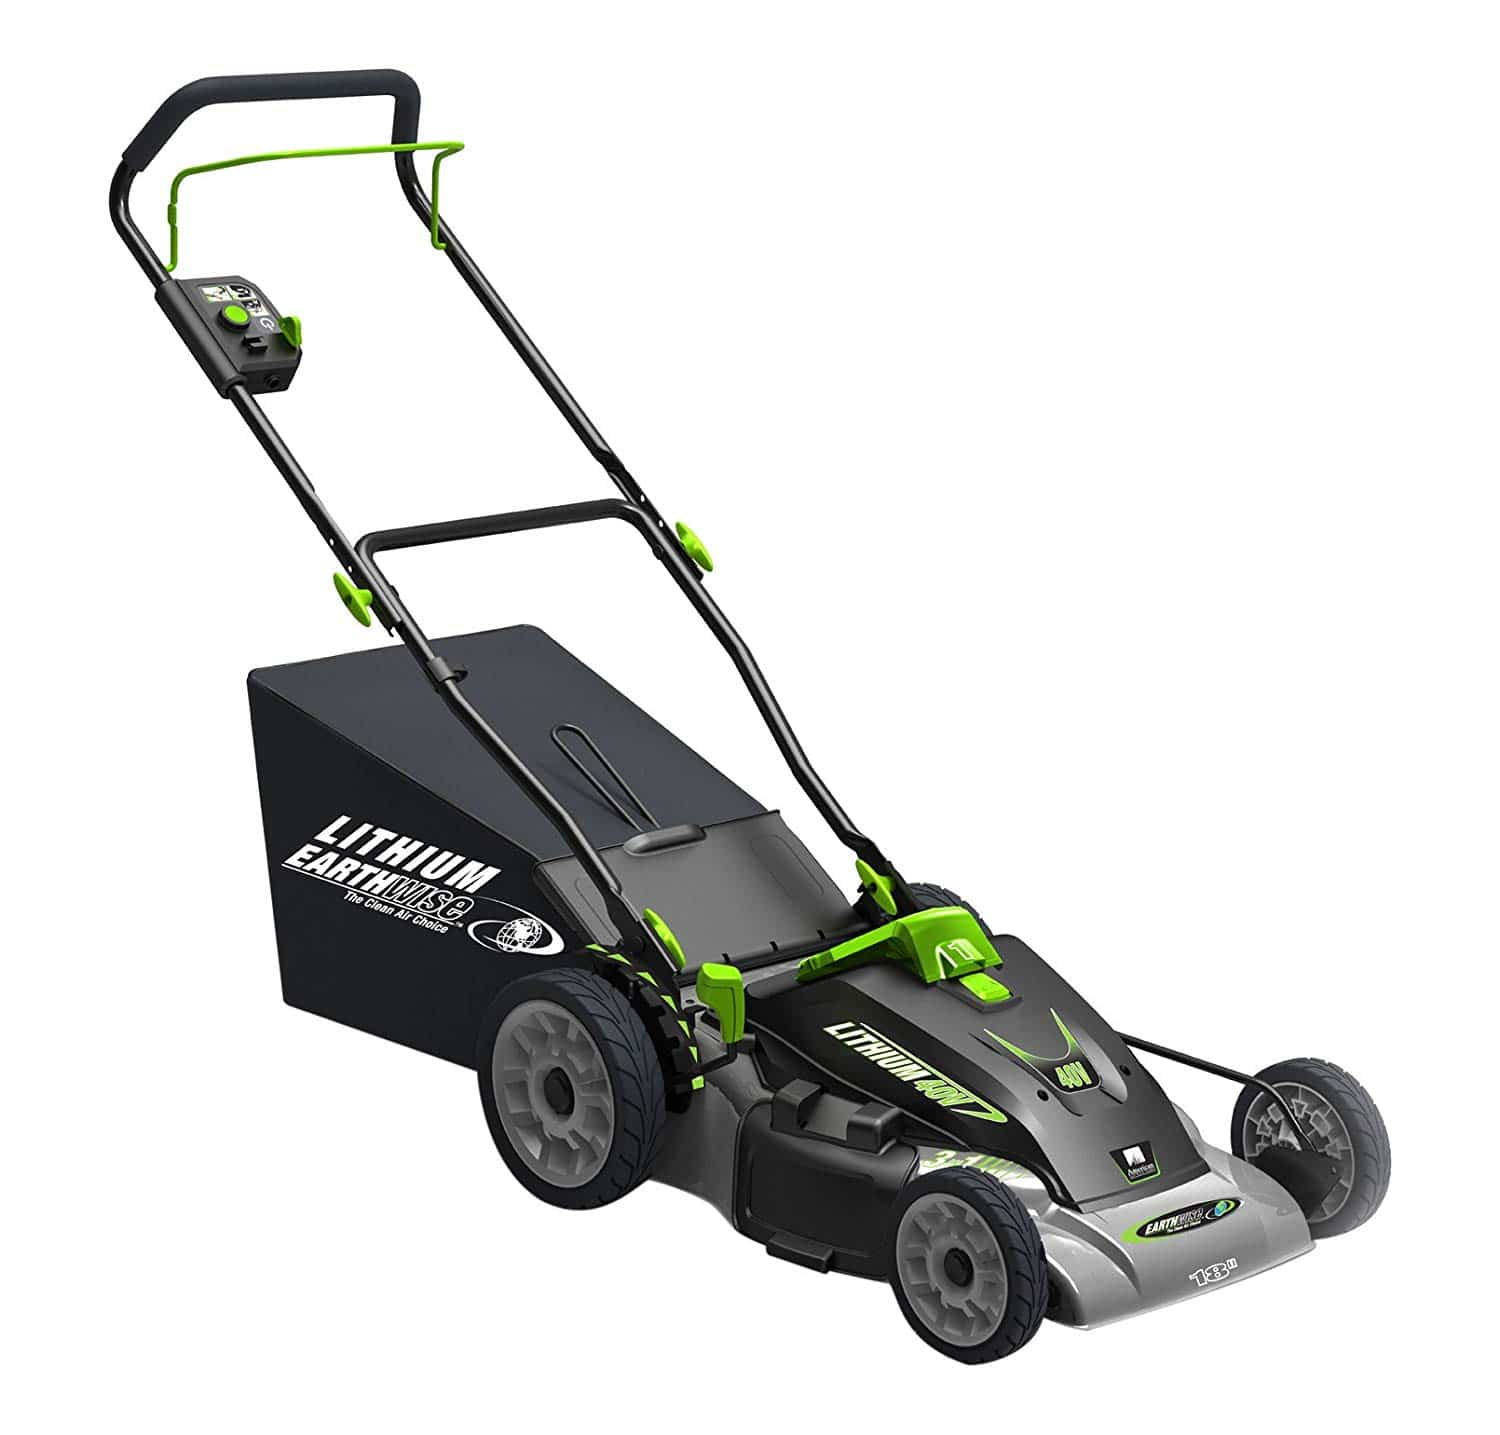 Earthwise 60418 Lithium-Ion Cordless Electric Lawn Mower